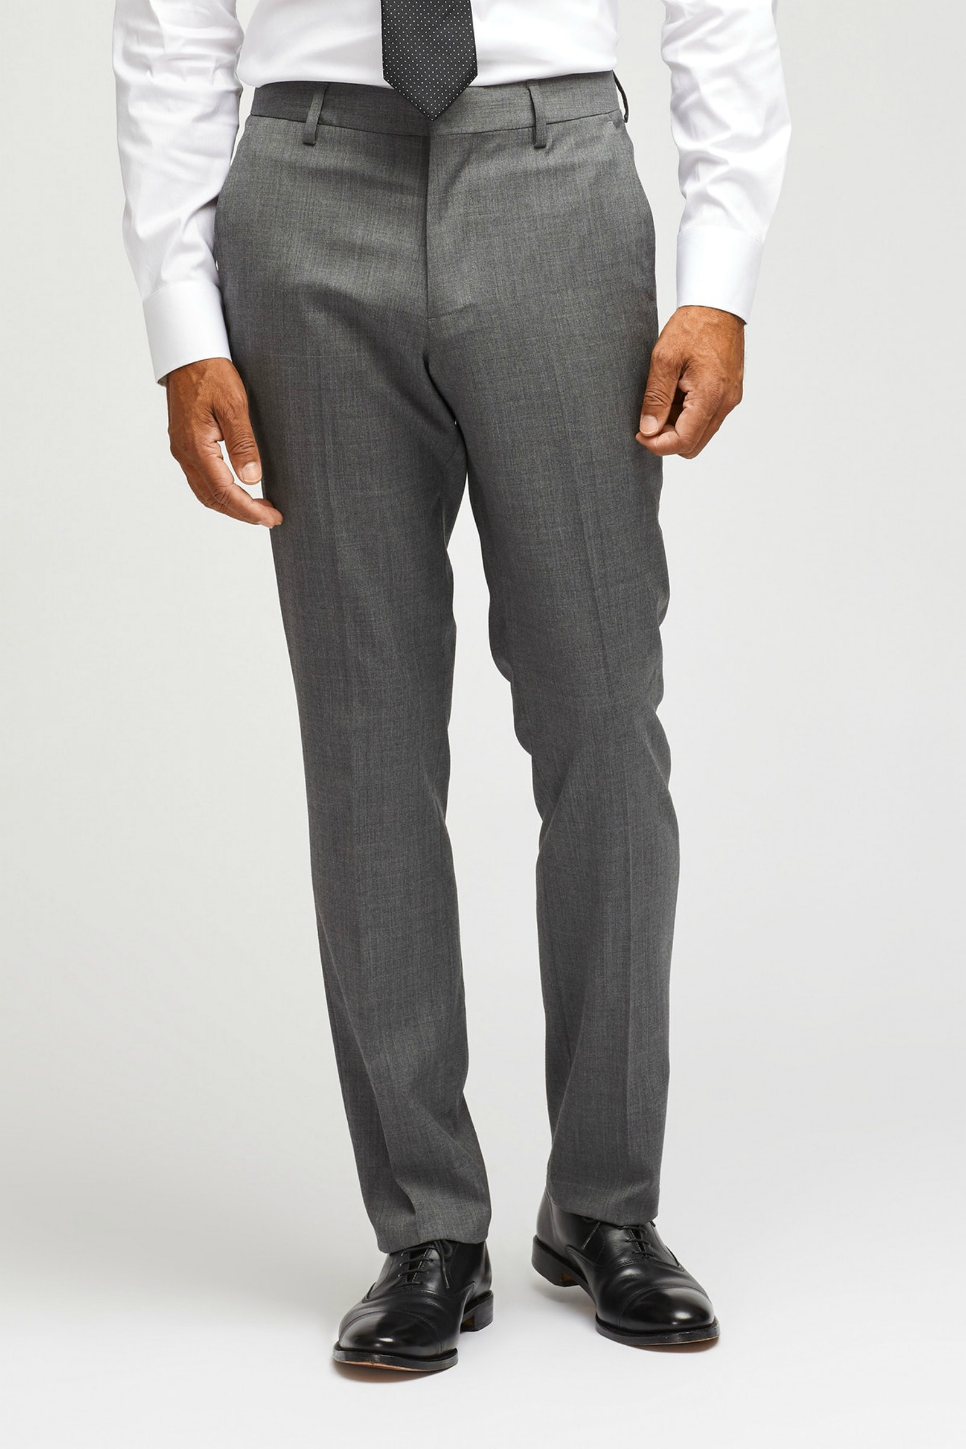 Bonobos - Jetsetter Stretch Wool Suit Pant - Grey - Front